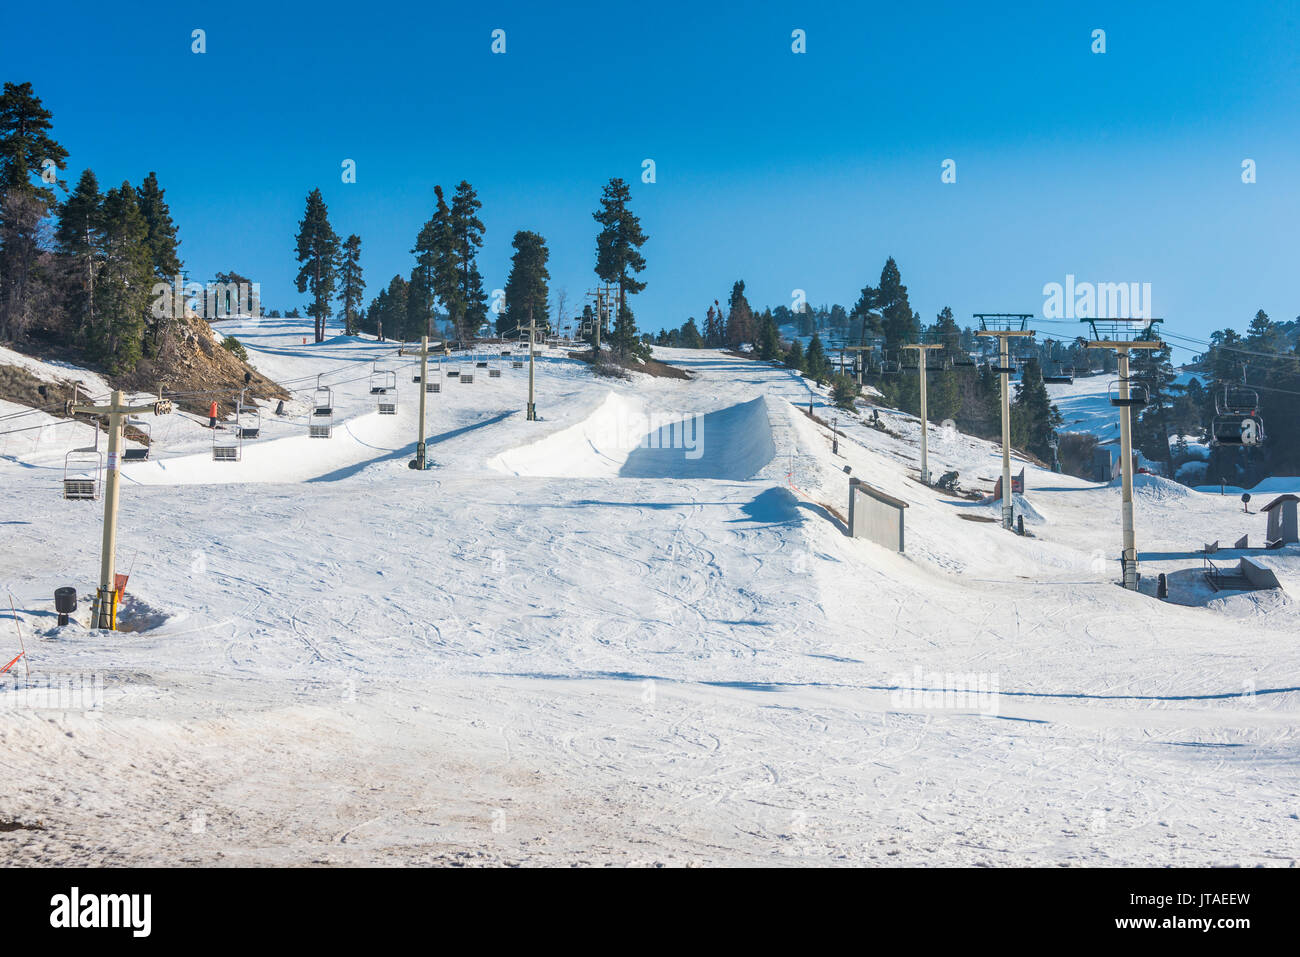 Station de ski de Big Bear au printemps, les montagnes de San Bernardino, Californie, États-Unis d'Amérique, Amérique du Nord Photo Stock